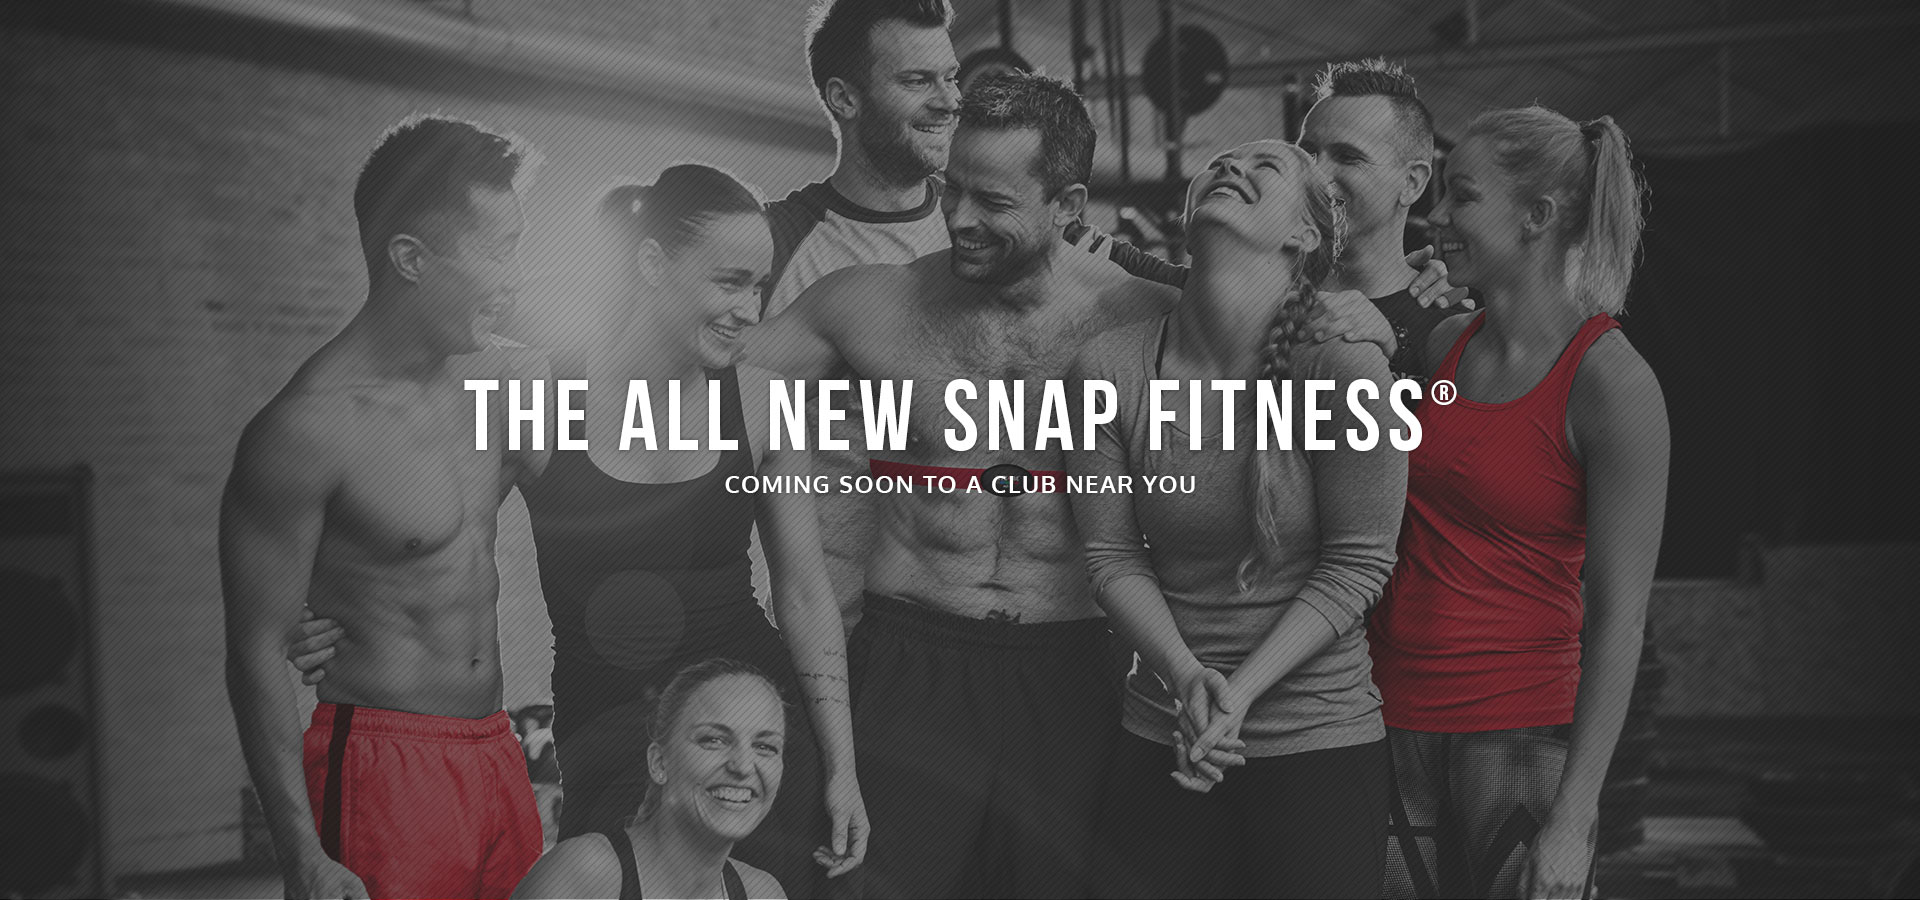 The All New Snap Fitness